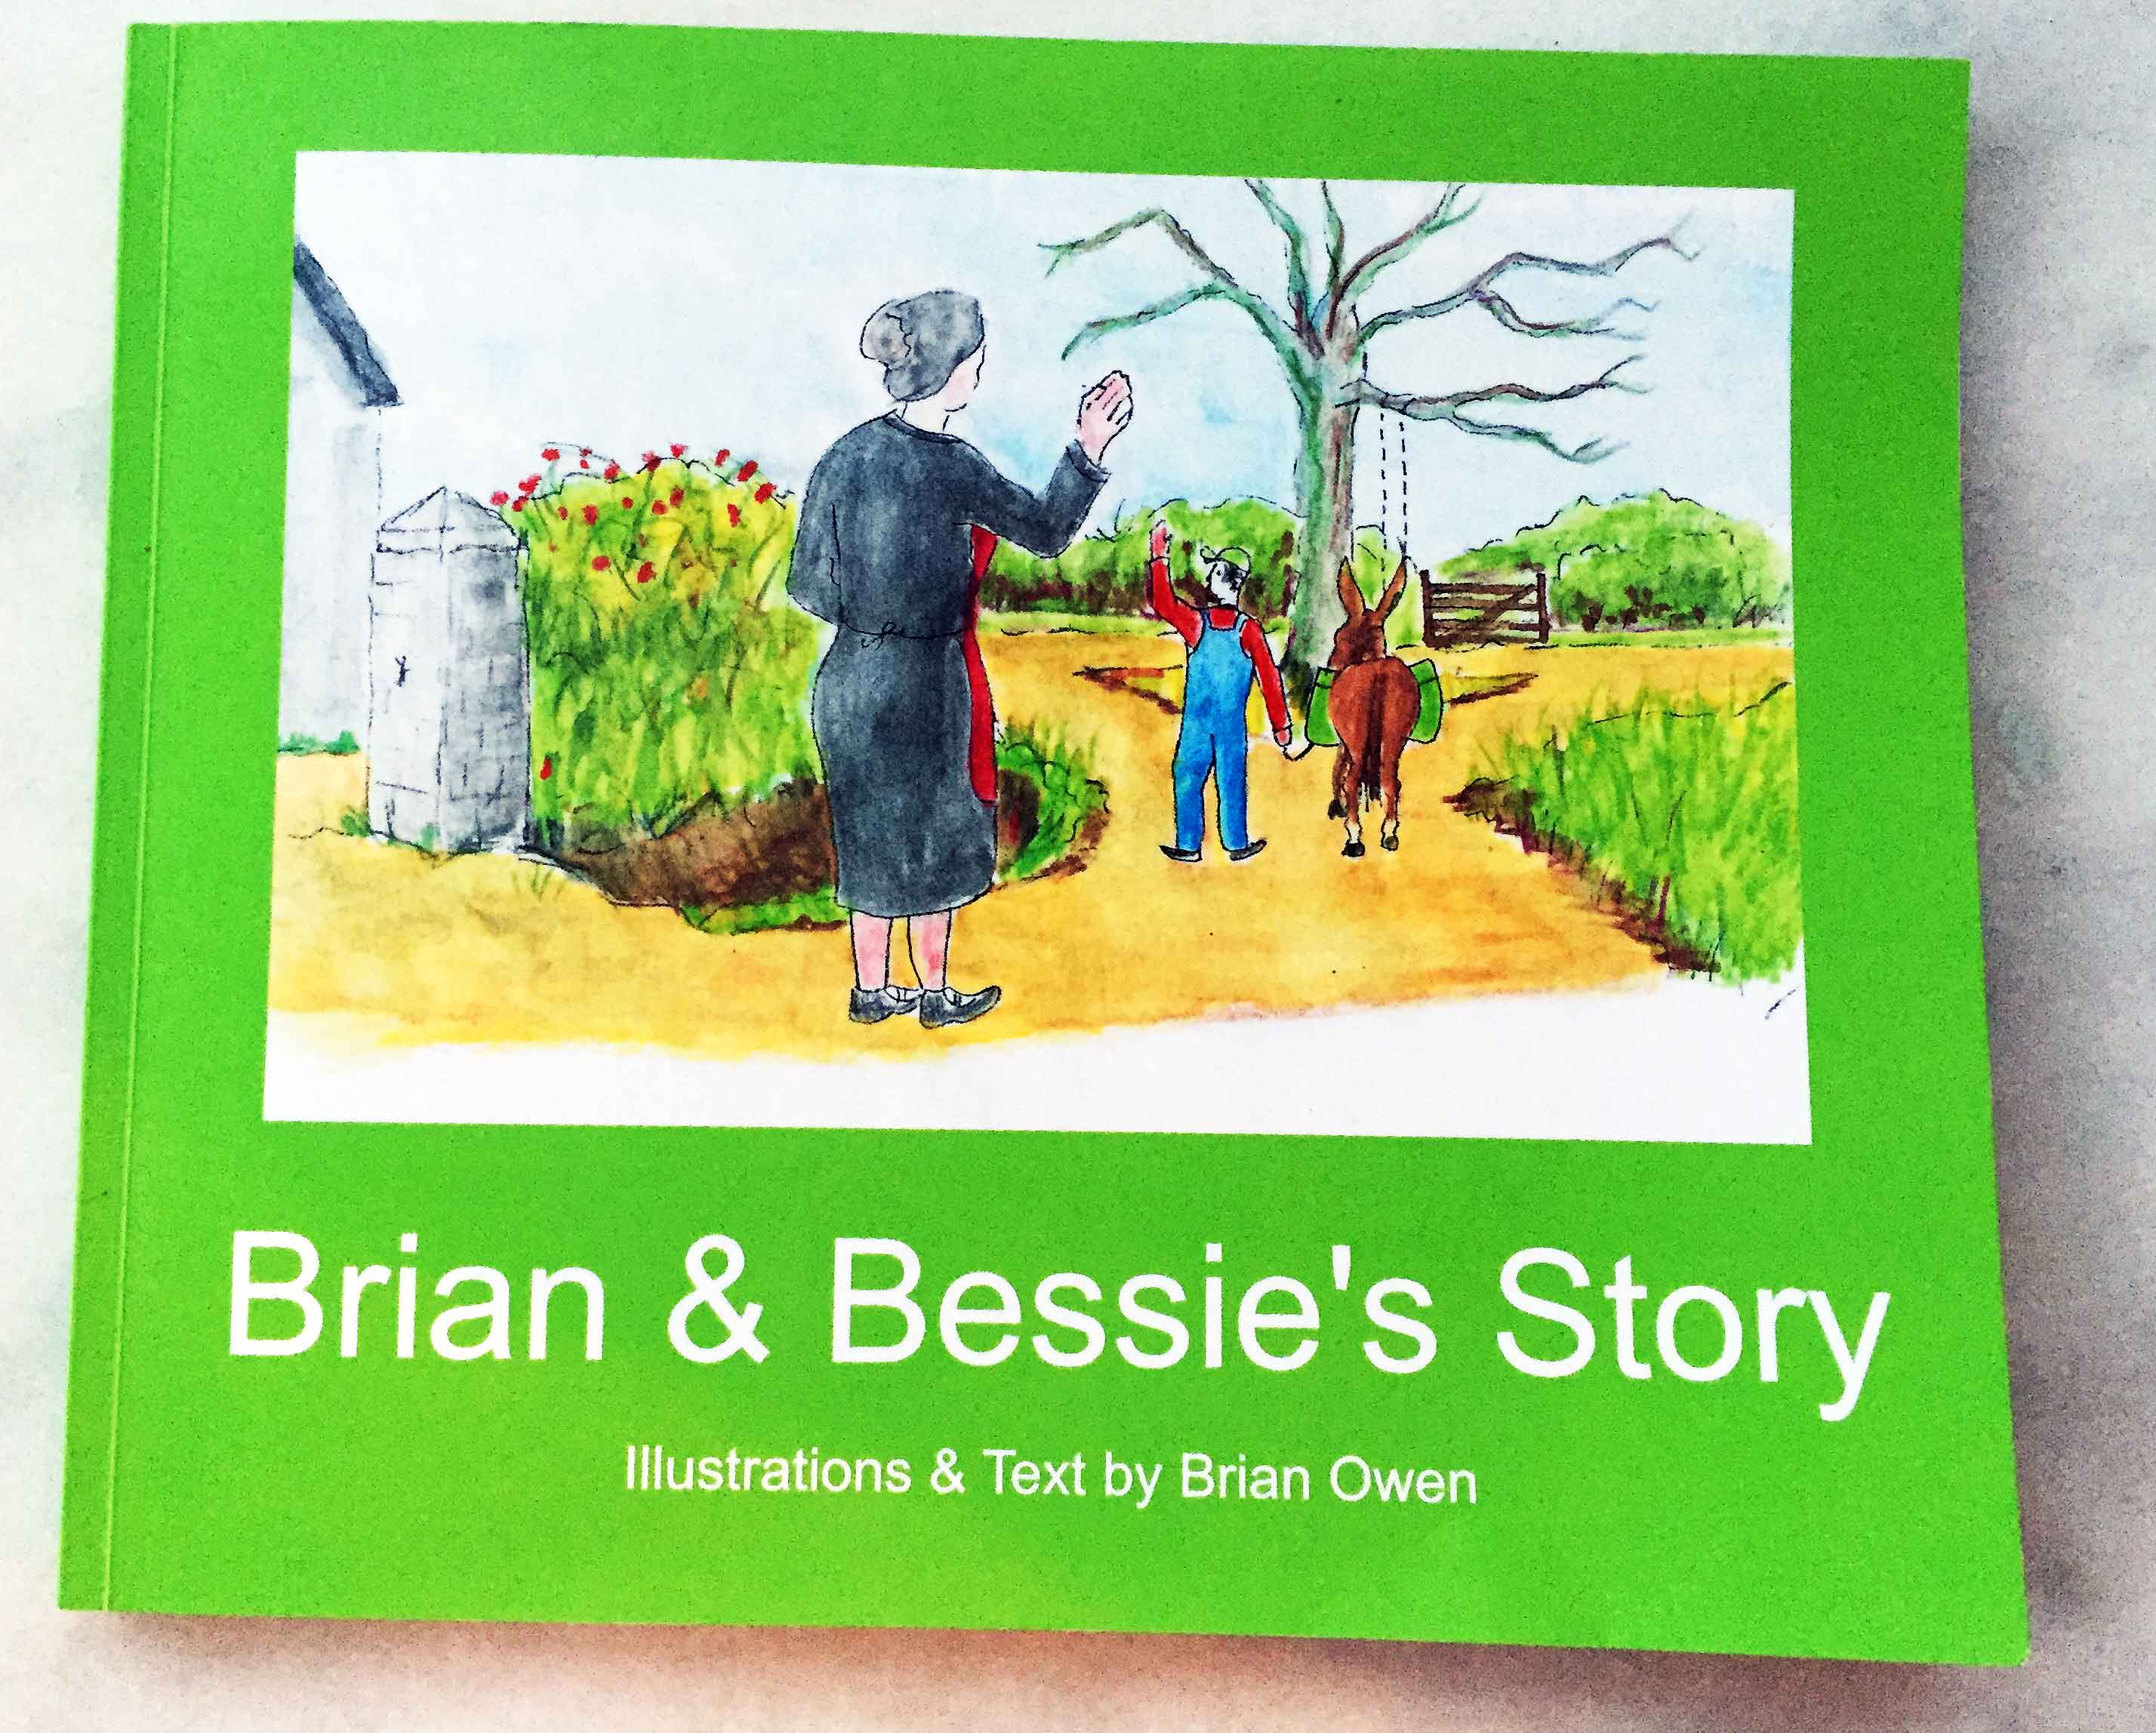 Brian & Bessie's Story – Order Your Copy